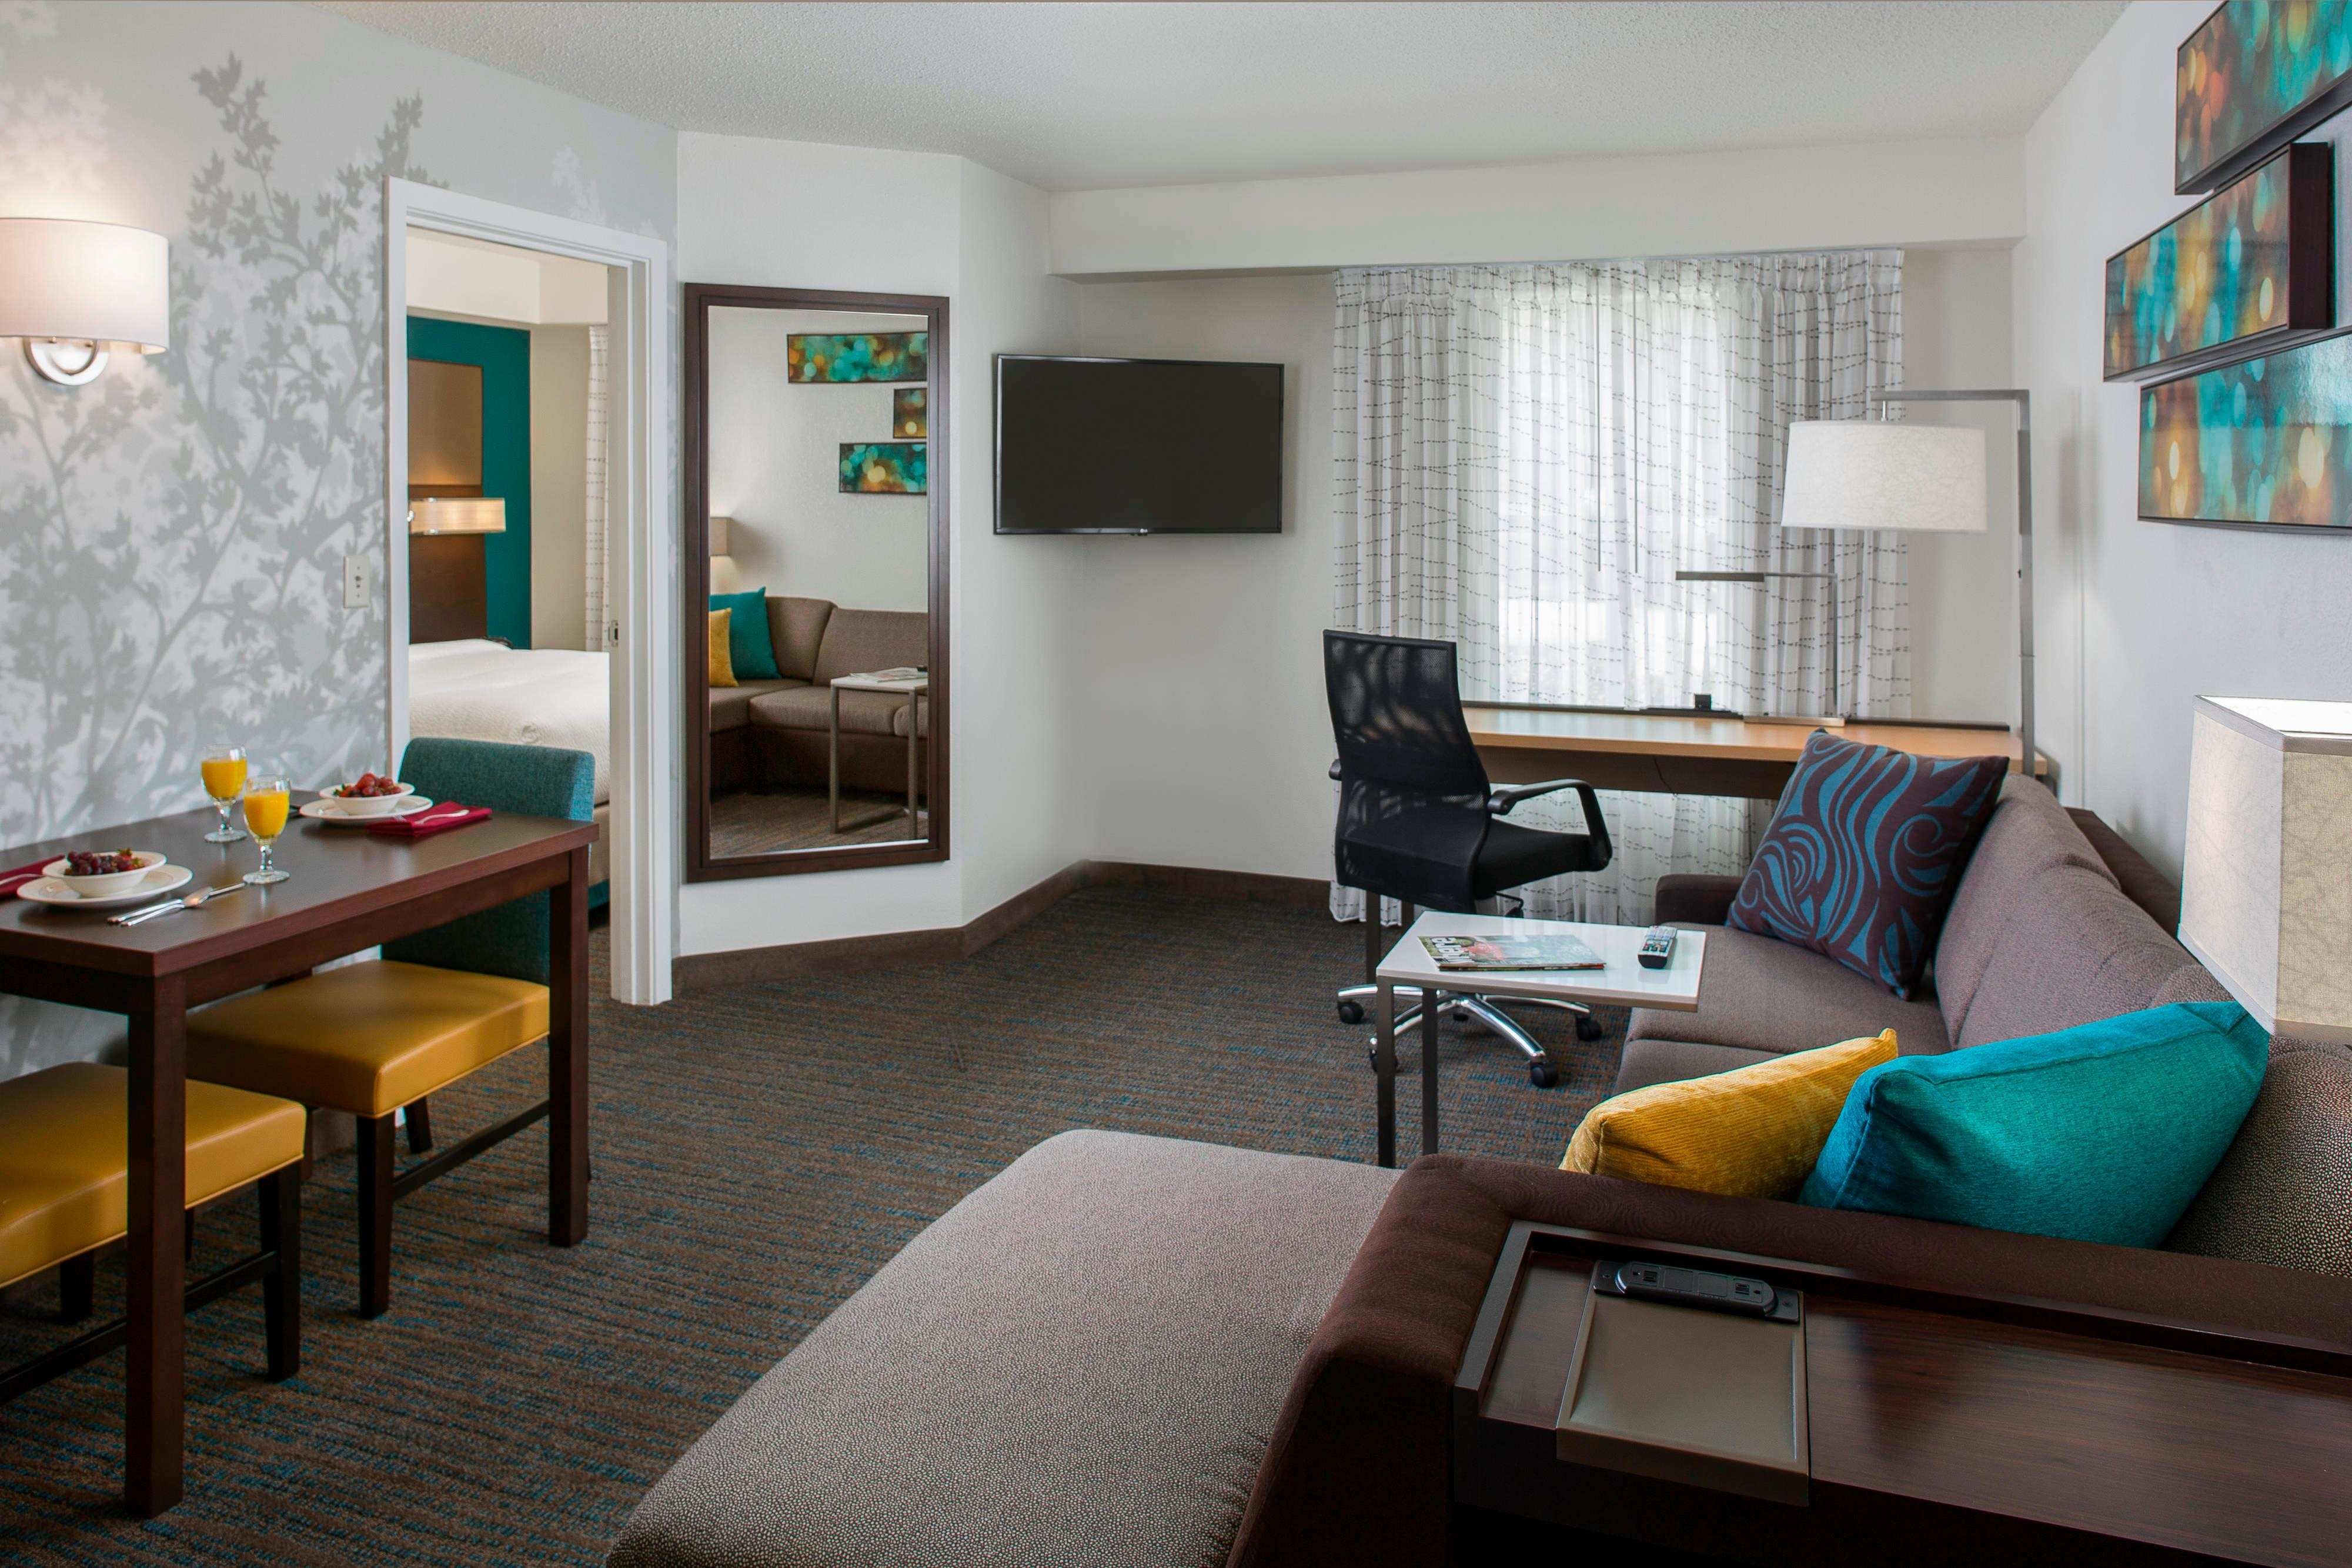 newly metairie in bedroom inn rooms renovated msyrm residence hotel suites hotels orleans clsc hor louisiana new suite